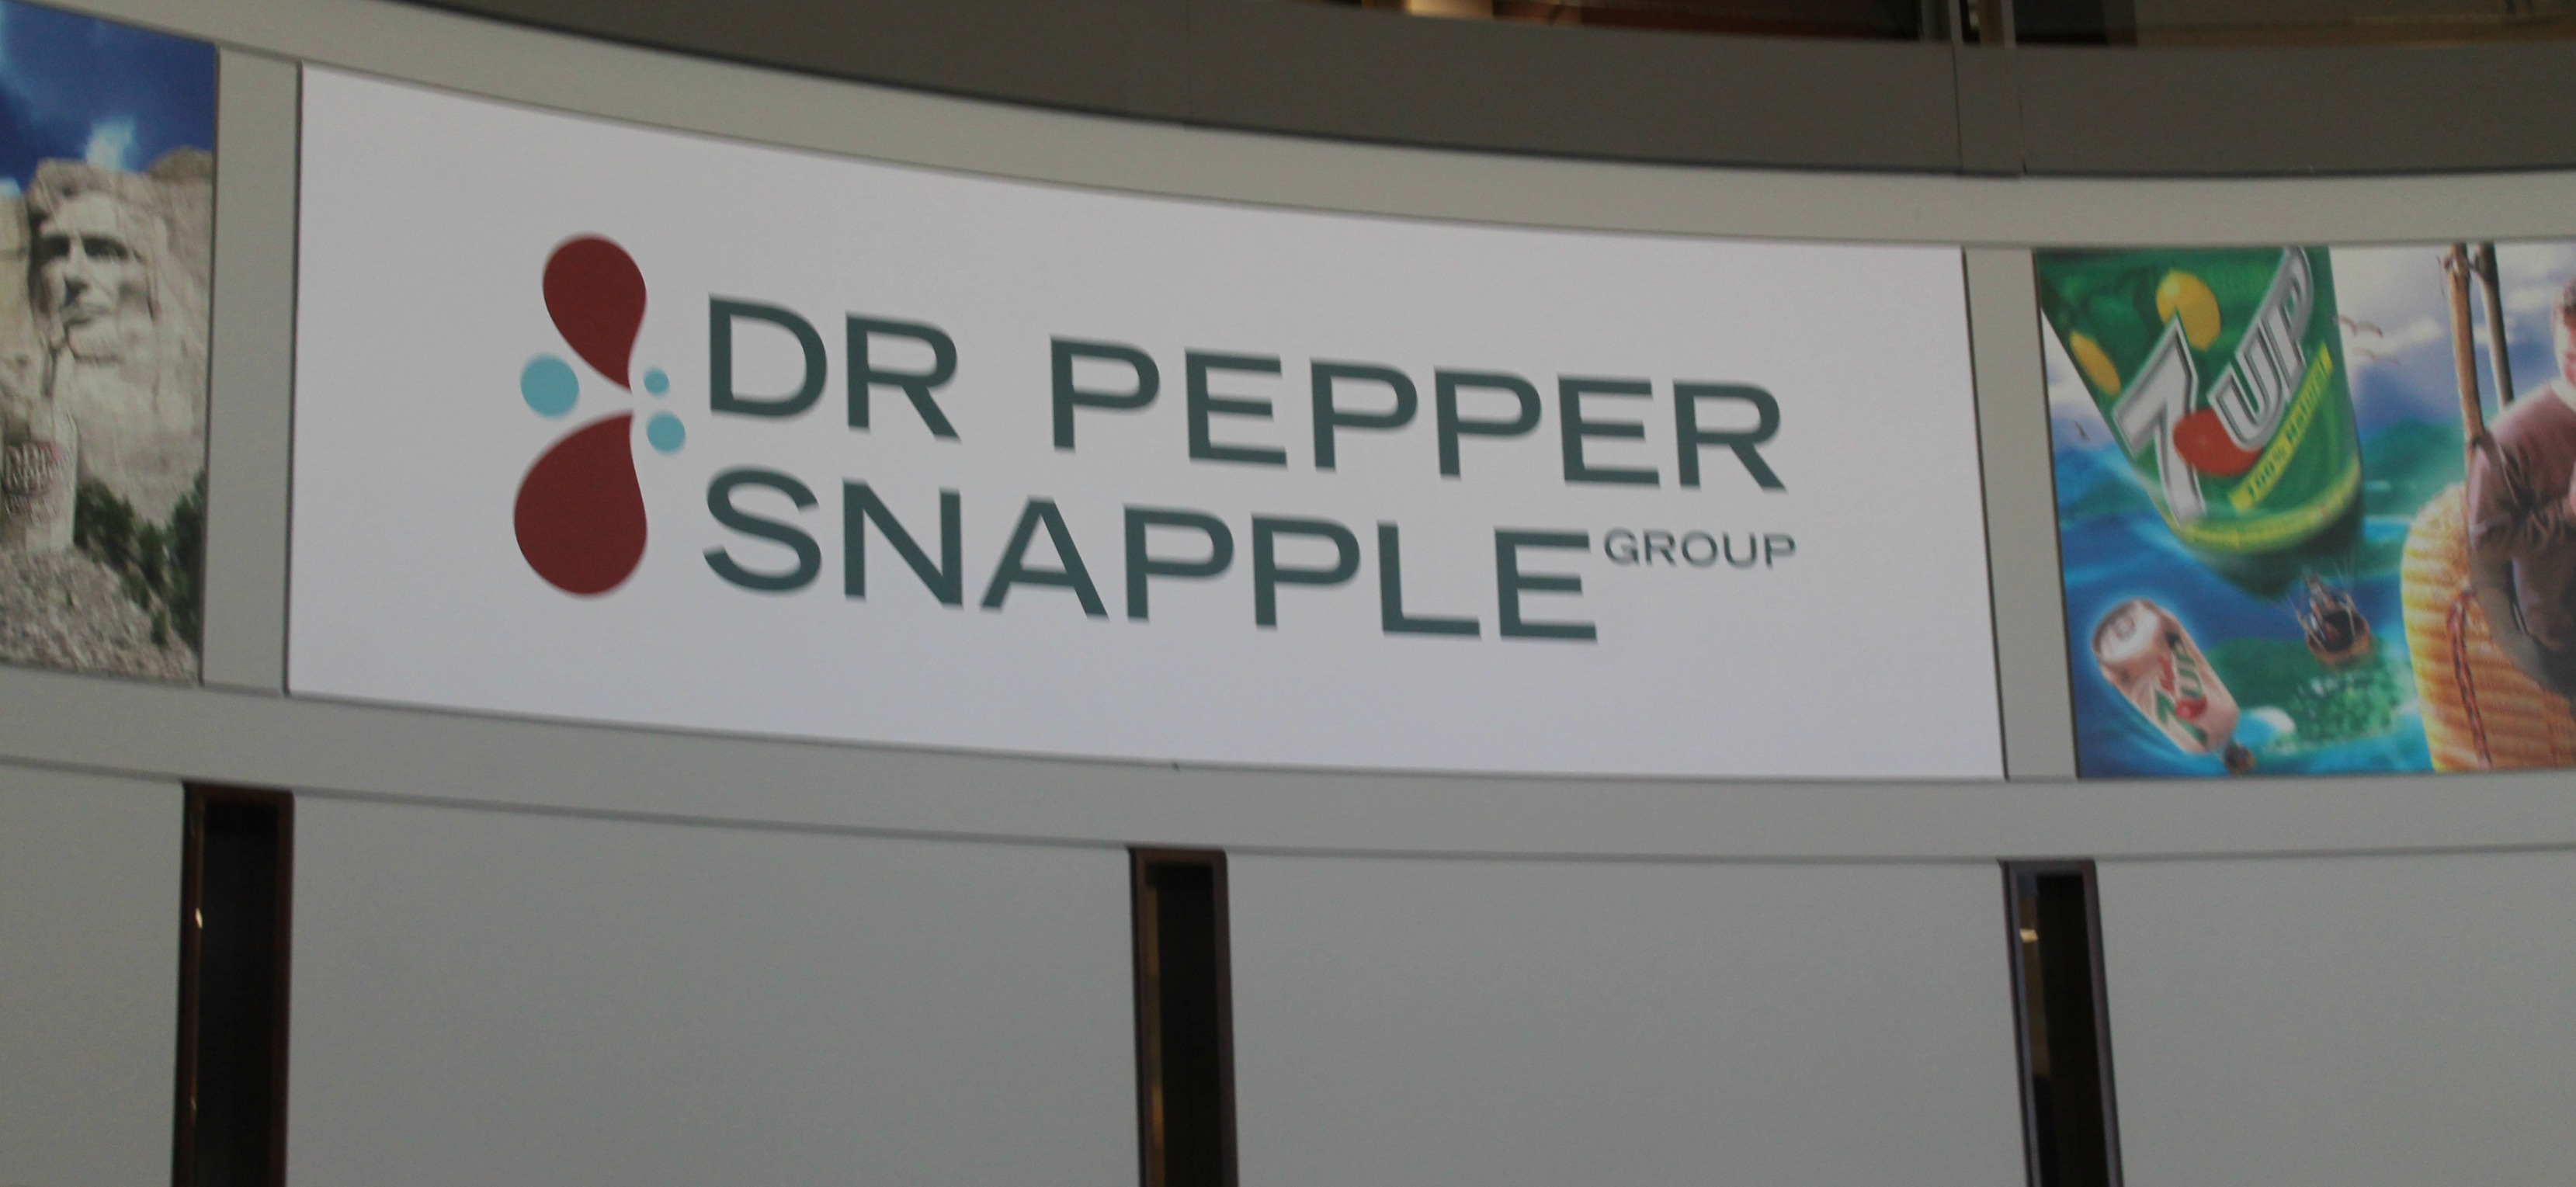 dr pepper snapple 2,966 tweets • 871 photos/videos • 7,176 followers dr pepper snapple group and keurig green mountain announce timing of investor event.